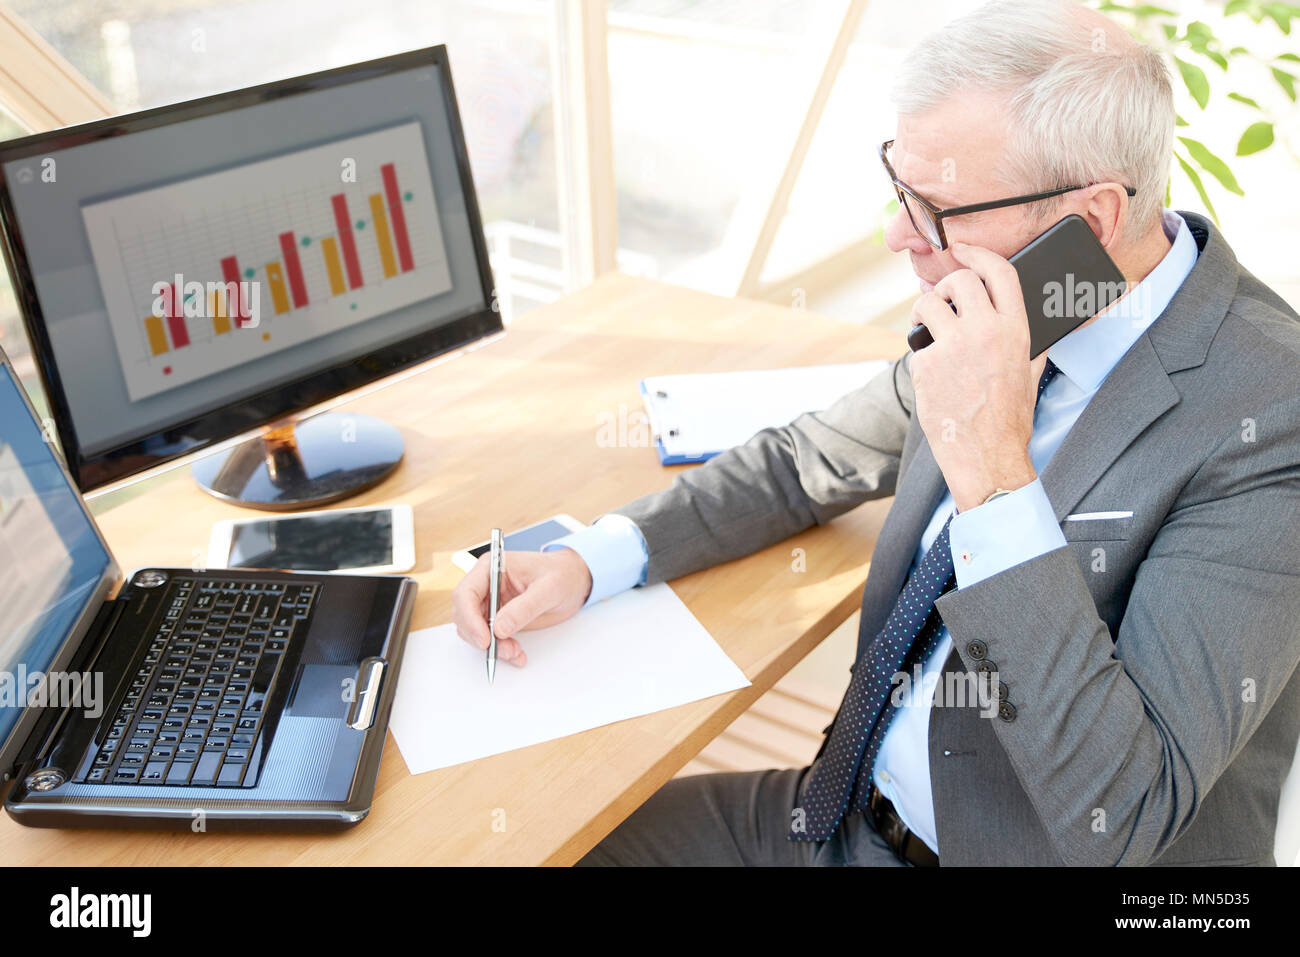 High angle shot of senior investment businessman wearing suit while sitting at office desk in front of laptop and making call. - Stock Image